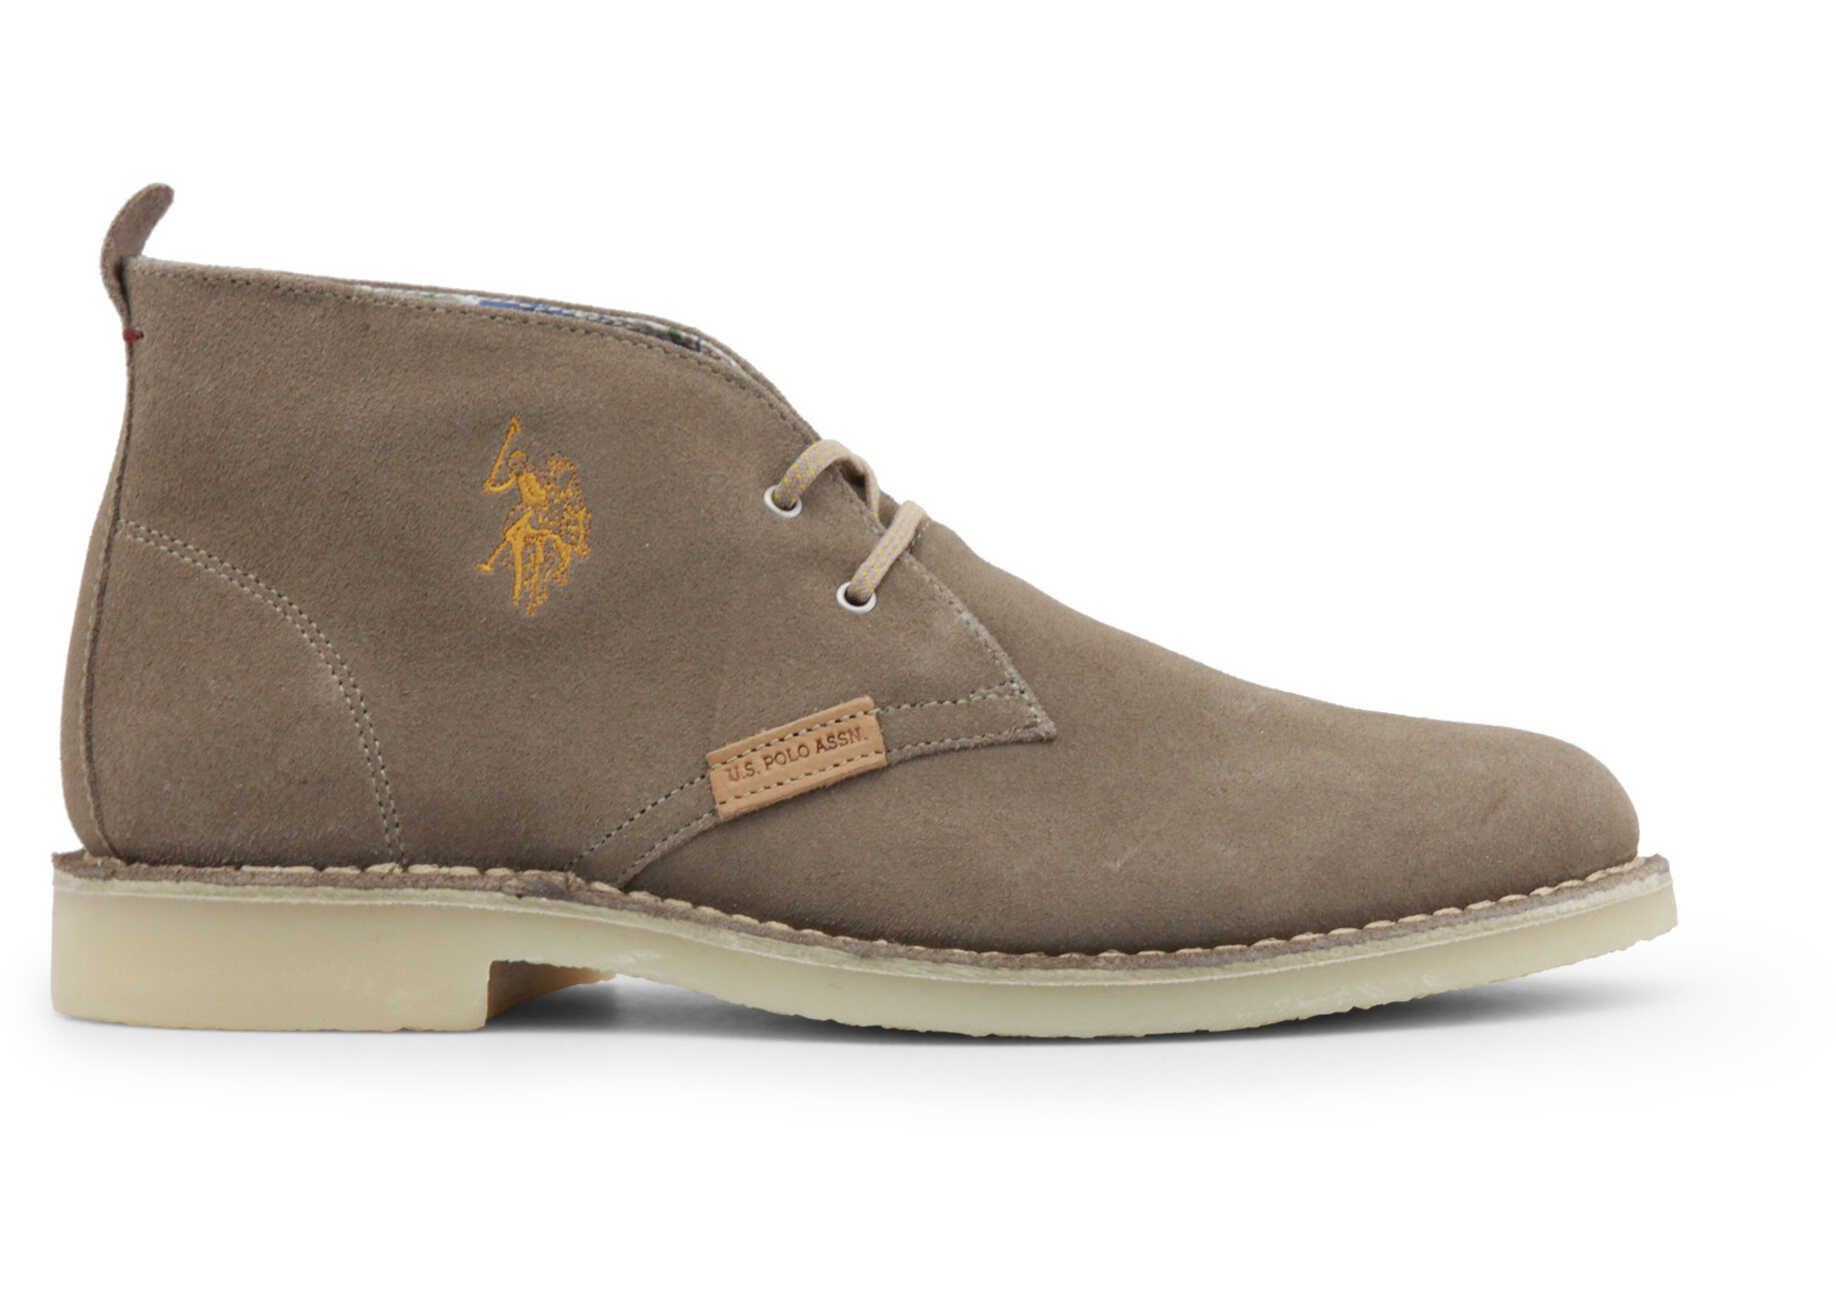 U.S. POLO ASSN. Must3119S4_S16 Brown